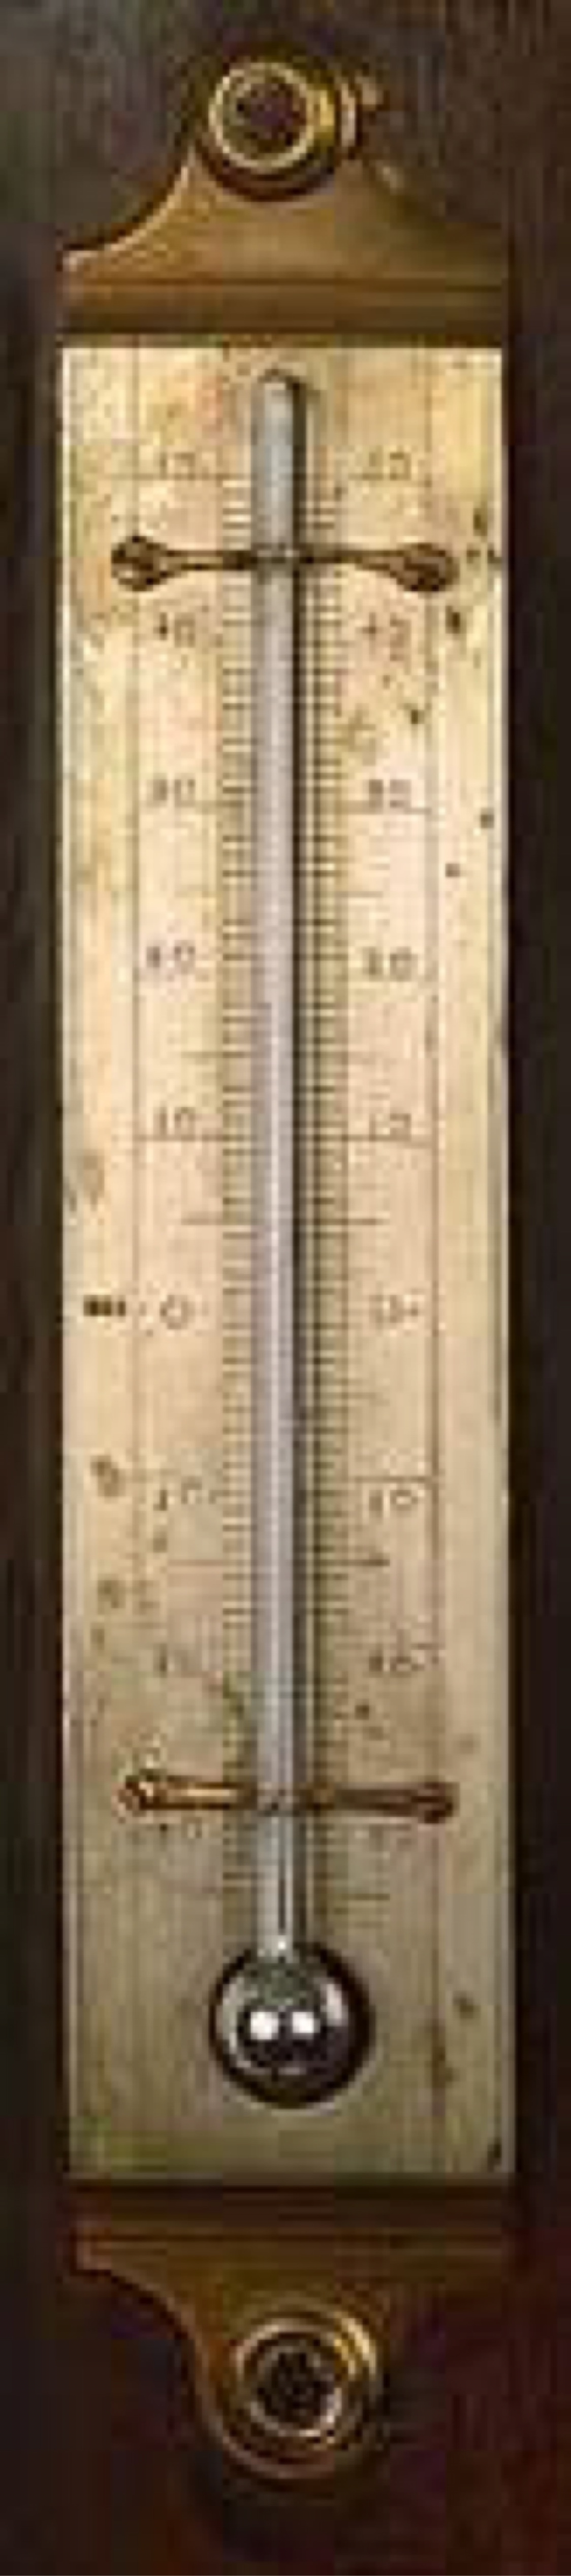 first mercury thermometer - photo #14